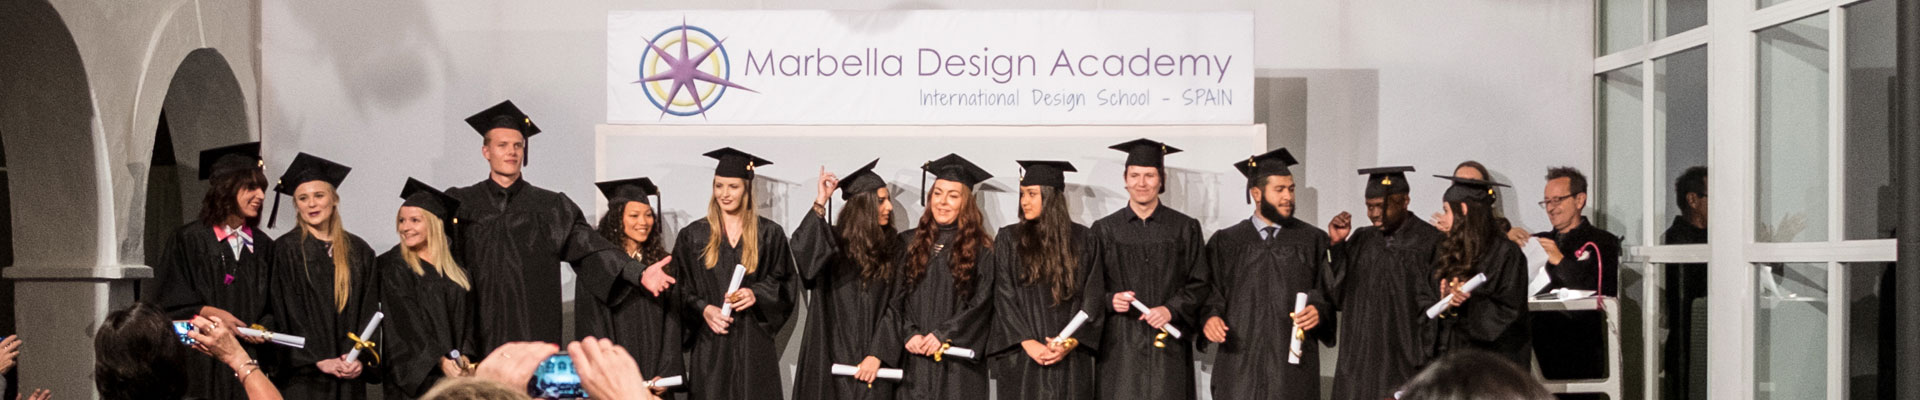 Graduation Ceremony in Marbella Design Academy